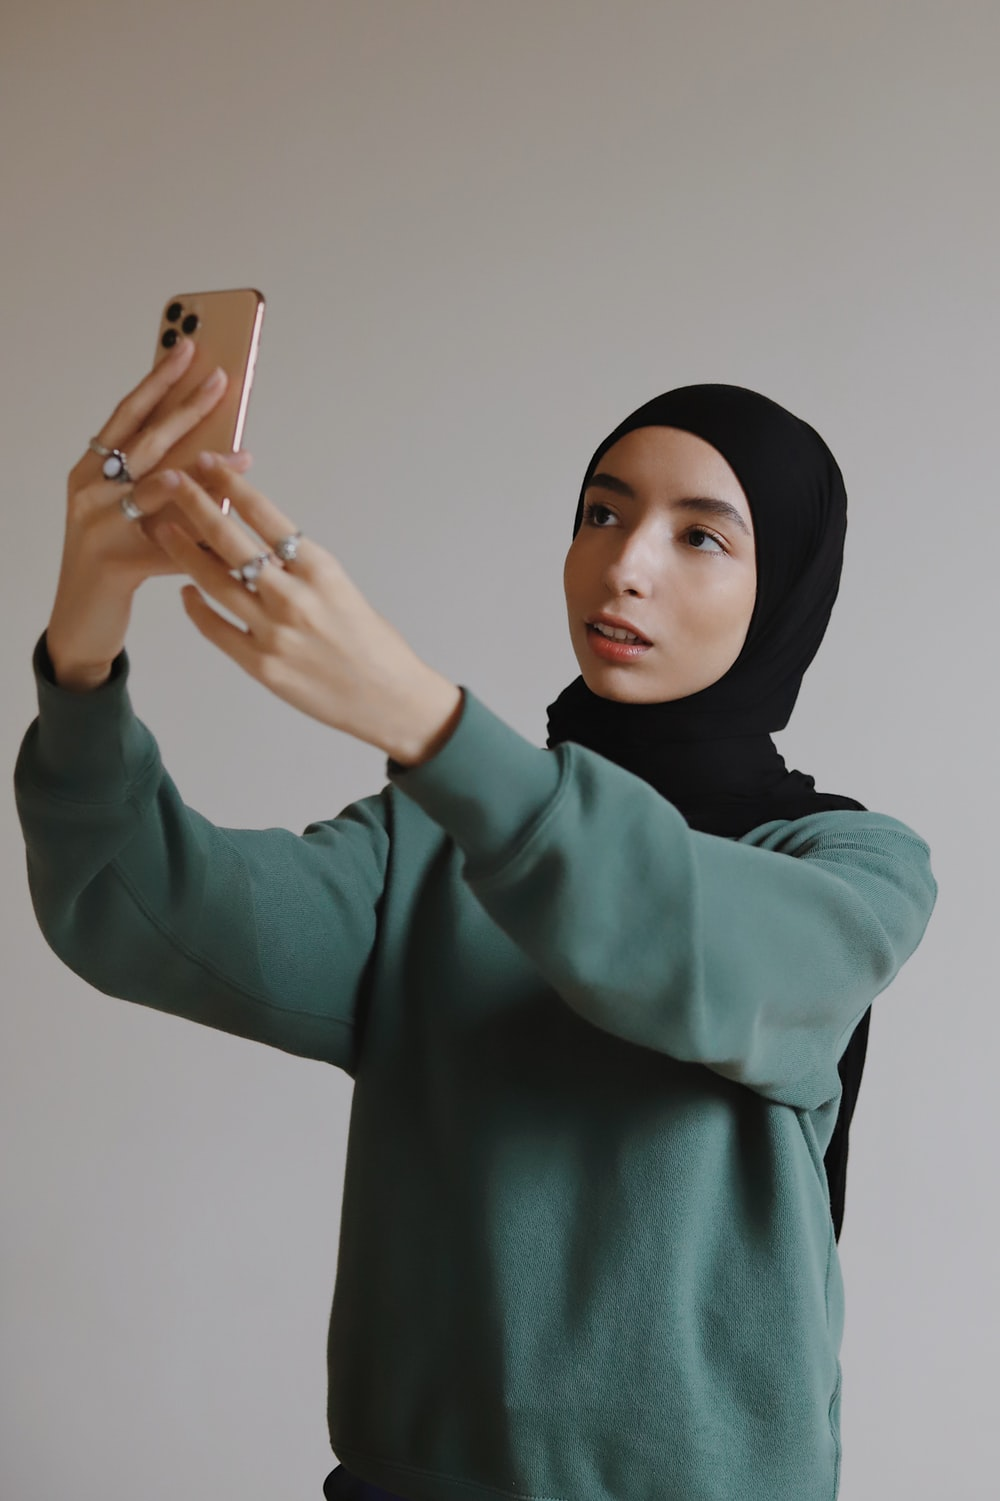 woman in green long sleeved shirt holding silver iphone 6